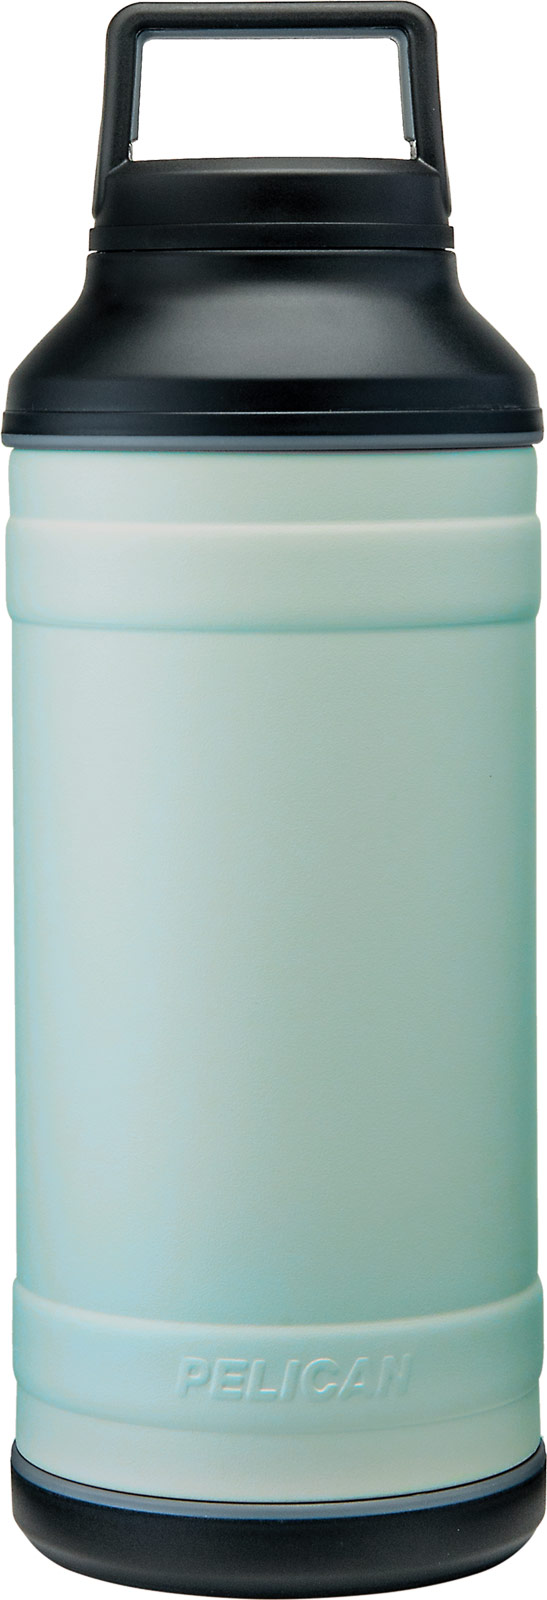 pelican seafoam bottle 64oz travel bottles